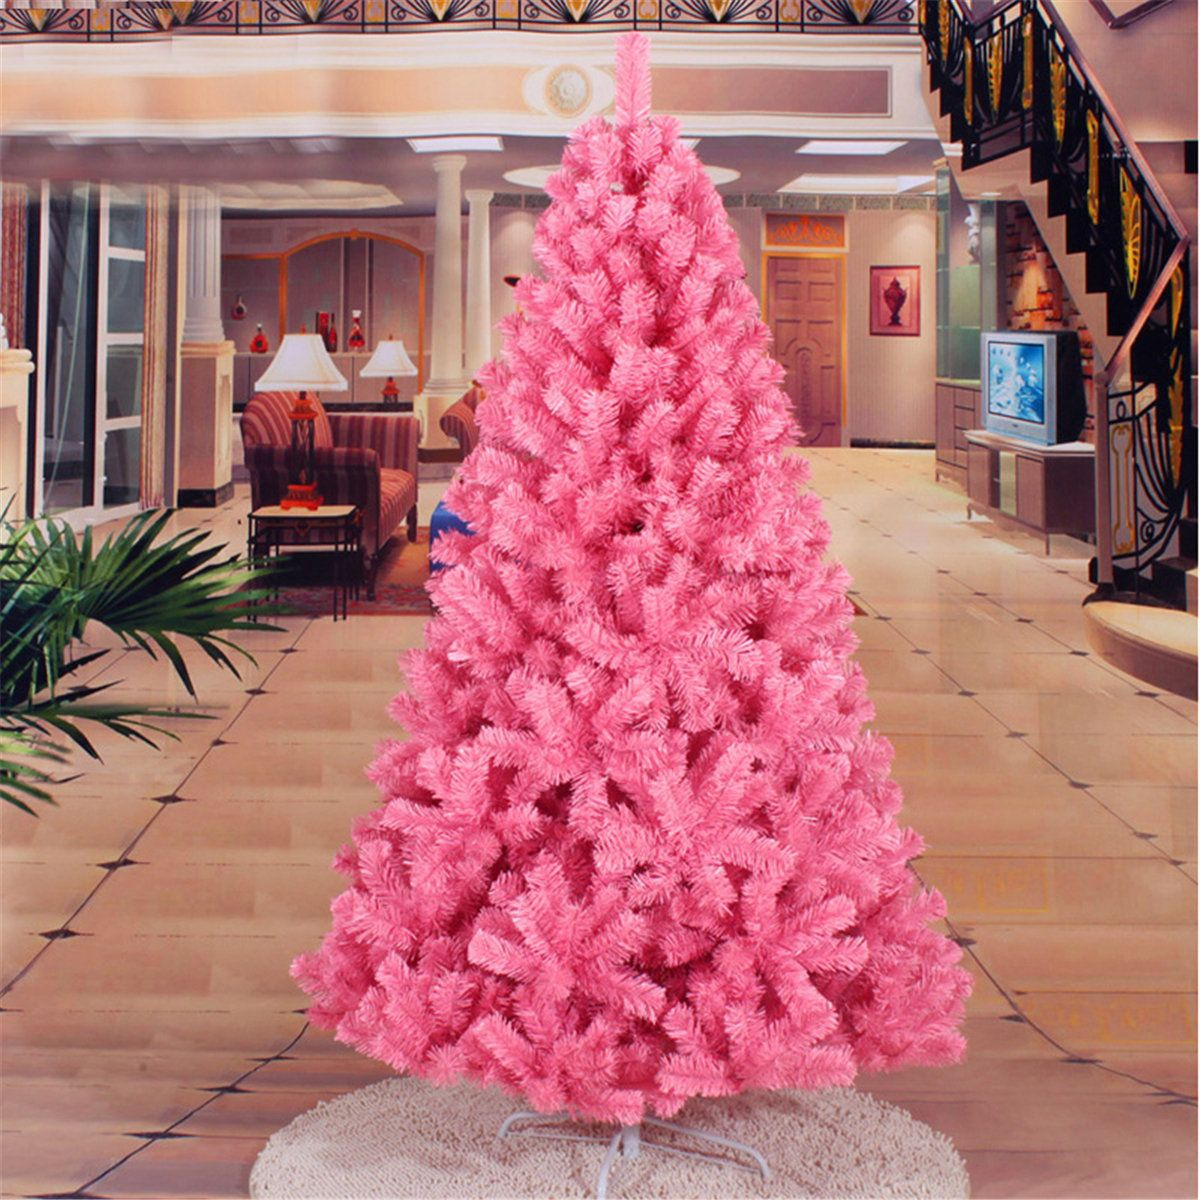 2ft 3ft 4ft 5ft Pink Artificial Christmas Tree DIY ...